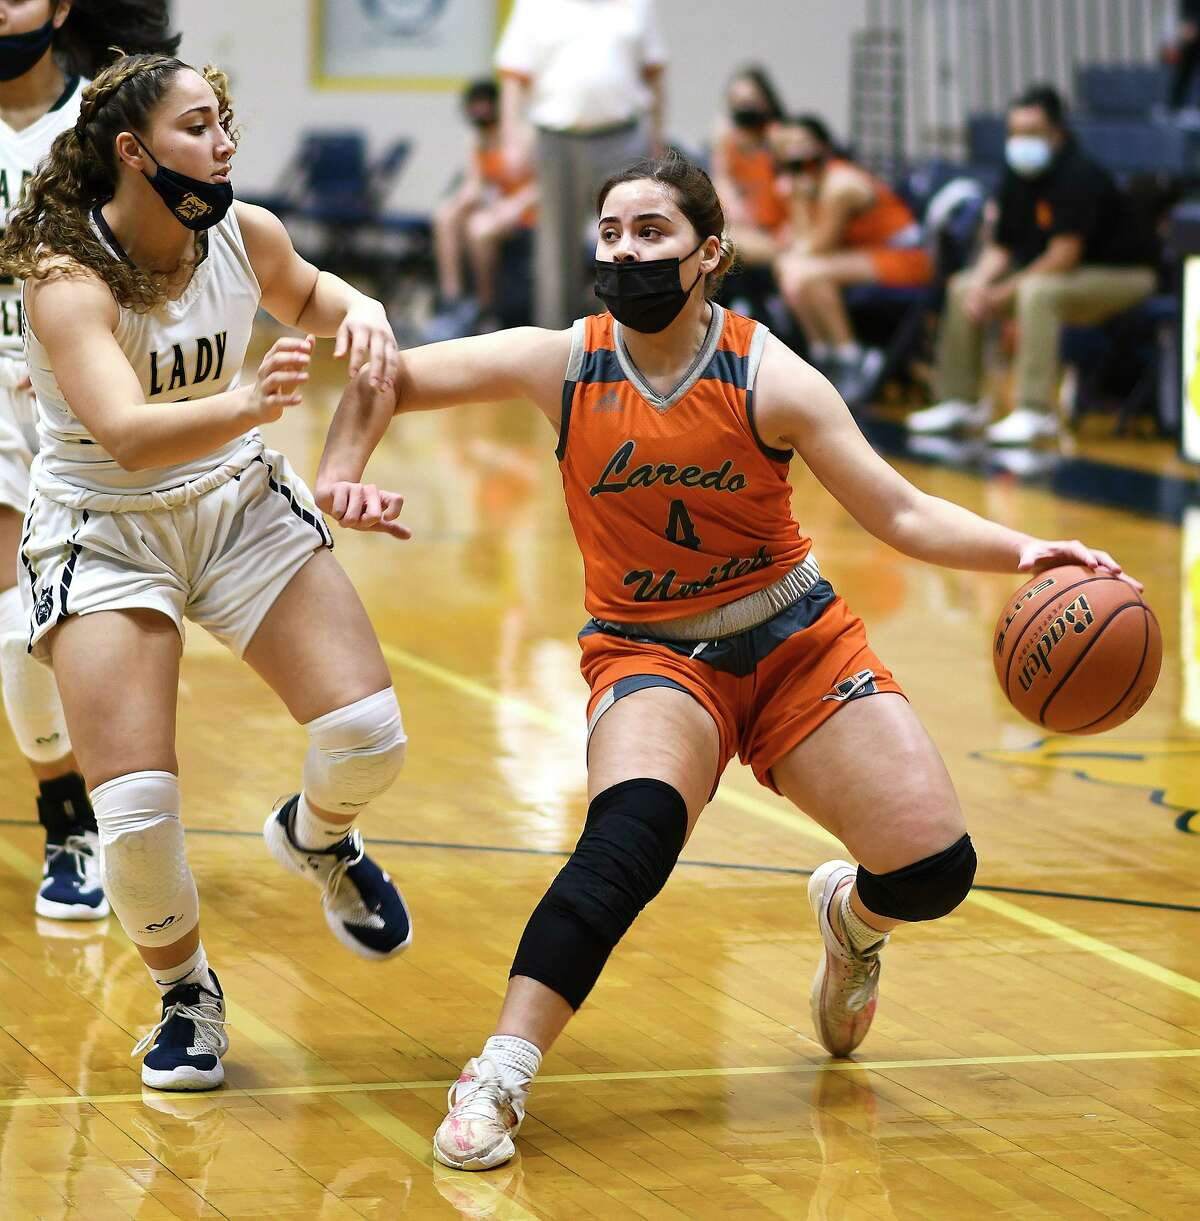 United graduate Evelyn Quiroz was named as one of the starters for the East All-Stars in the Blackout Athletics Senior Basketball All-Star game.